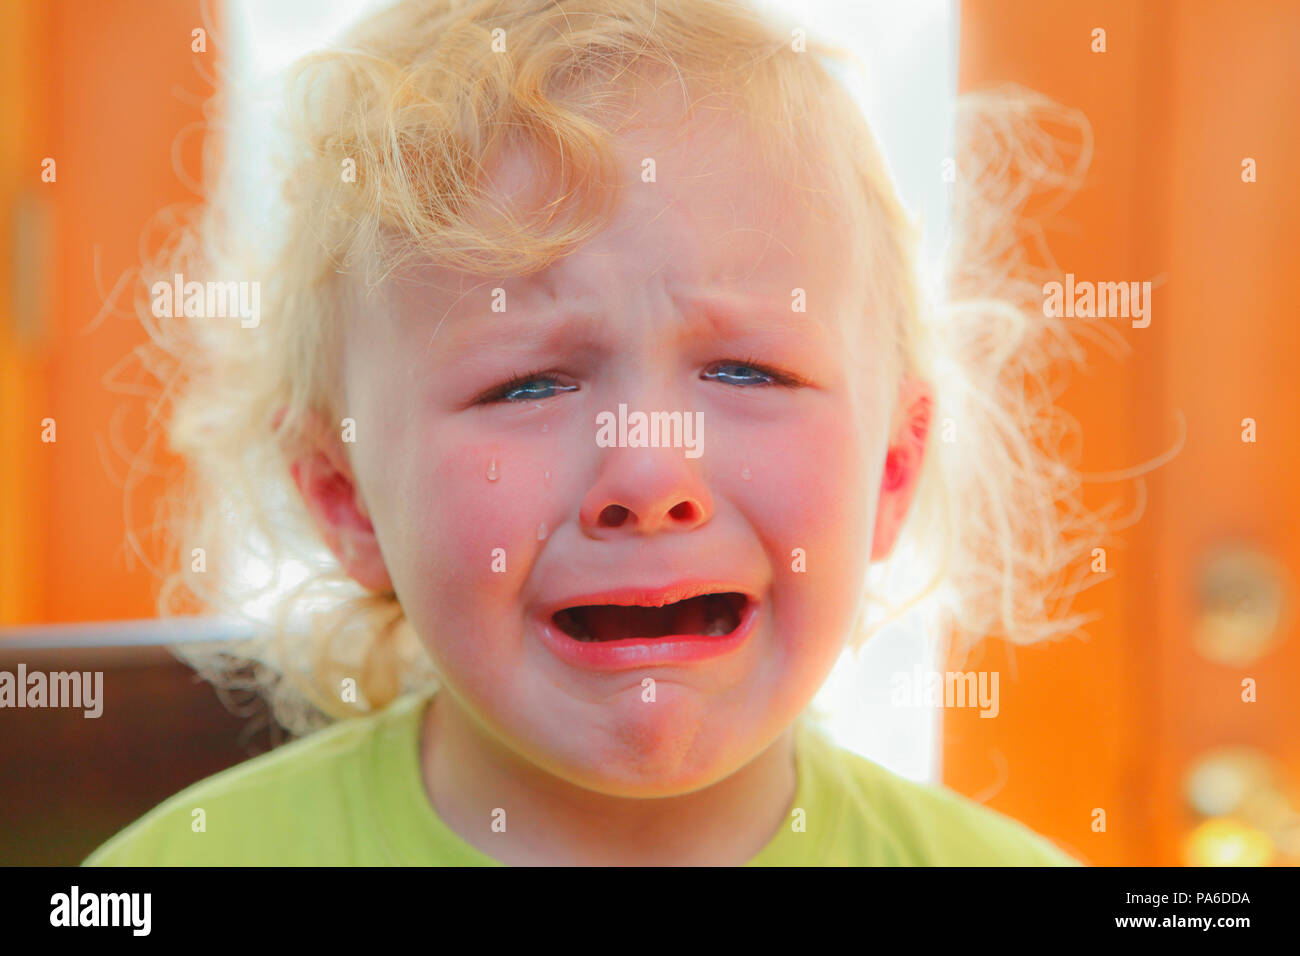 Toddler with tears - Stock Image